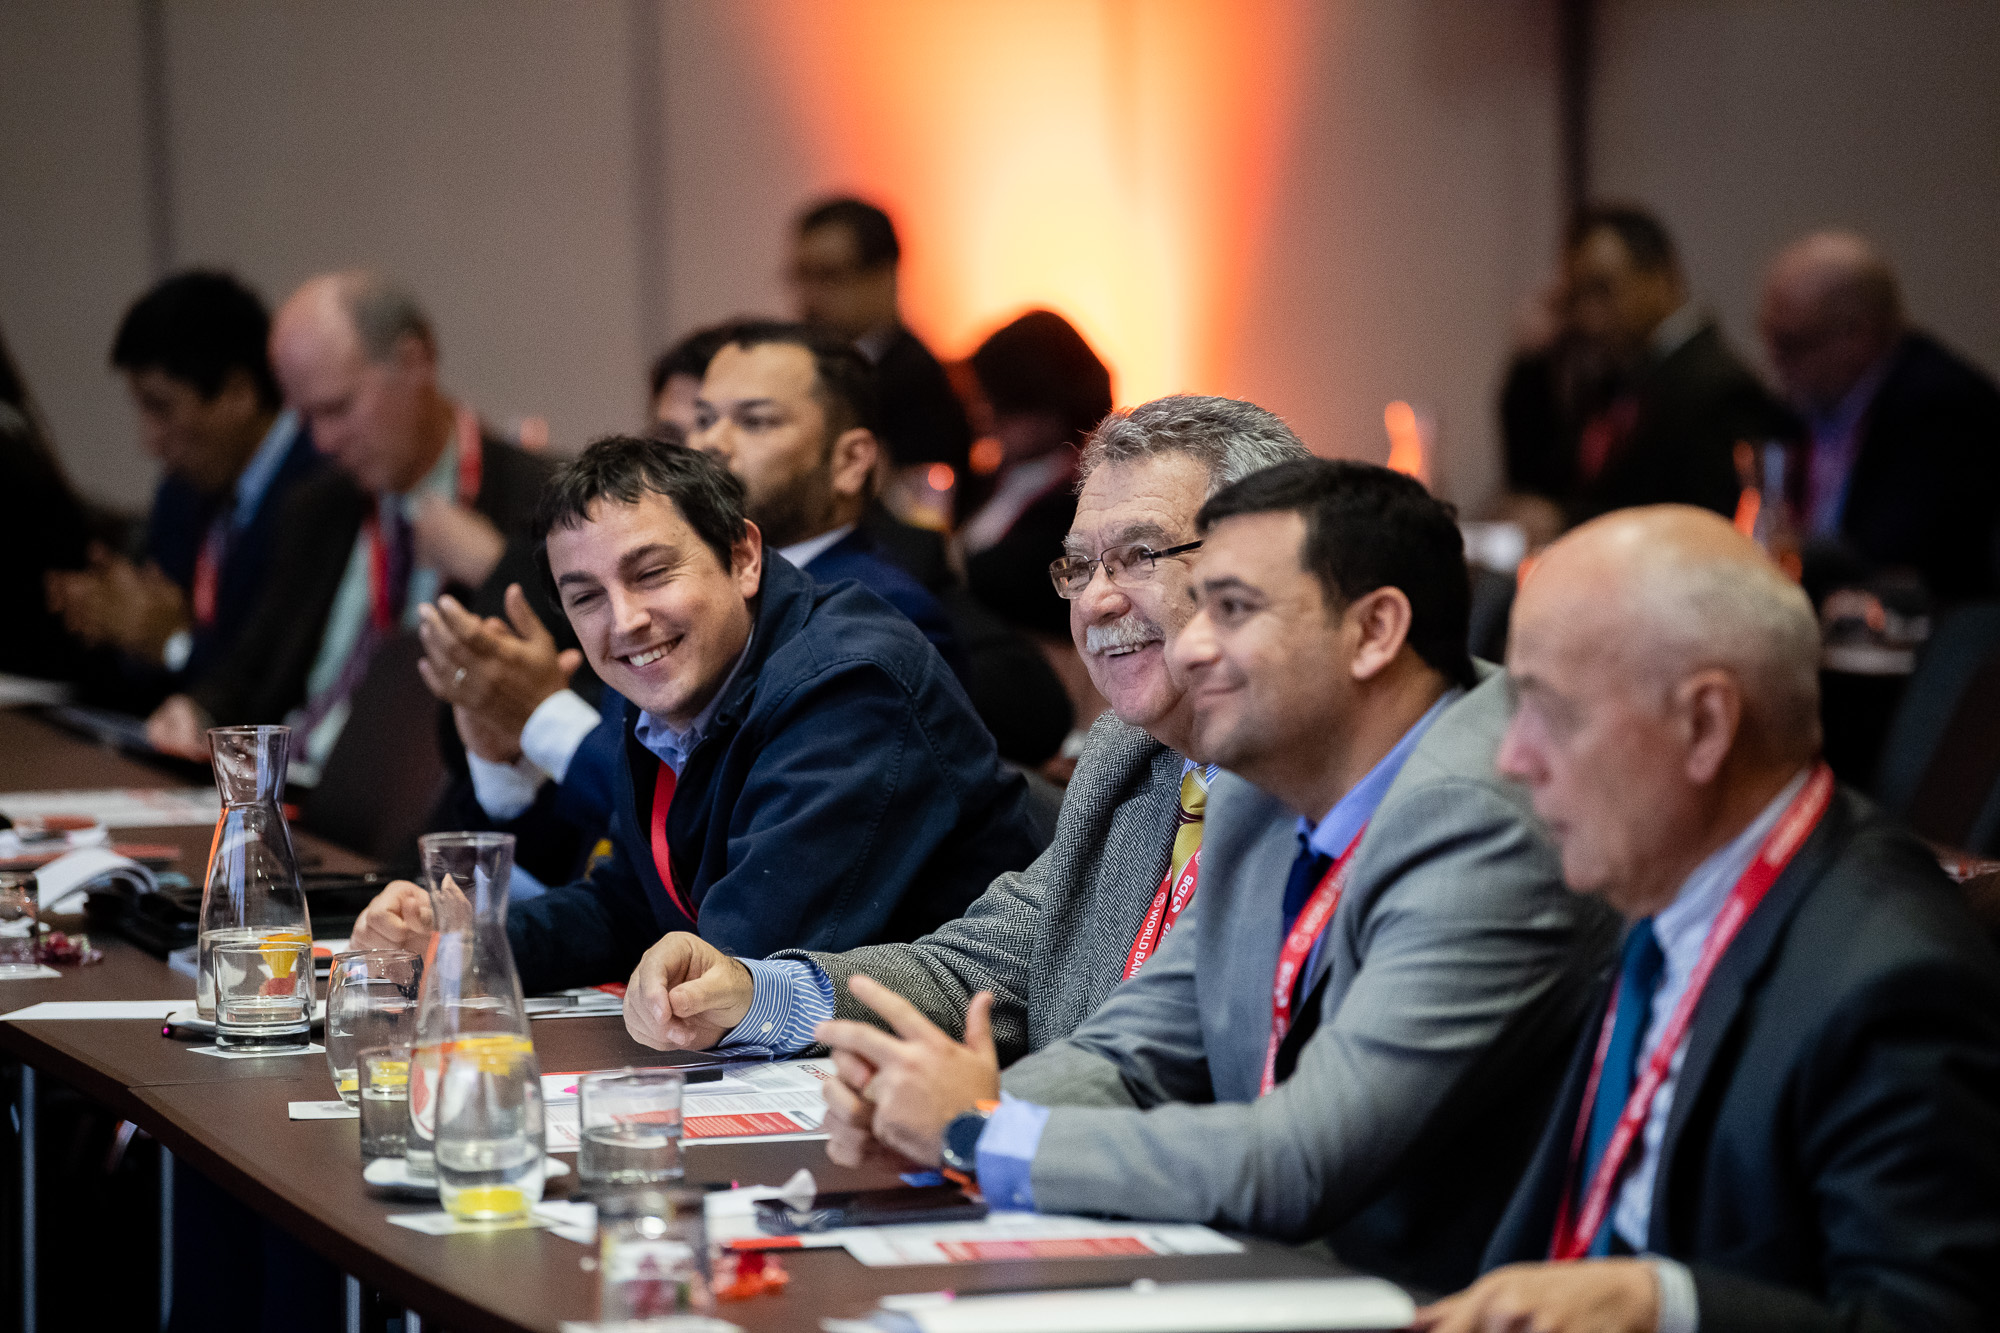 Attendees-in-event-room-202-GEOLAC_SANTIAGO